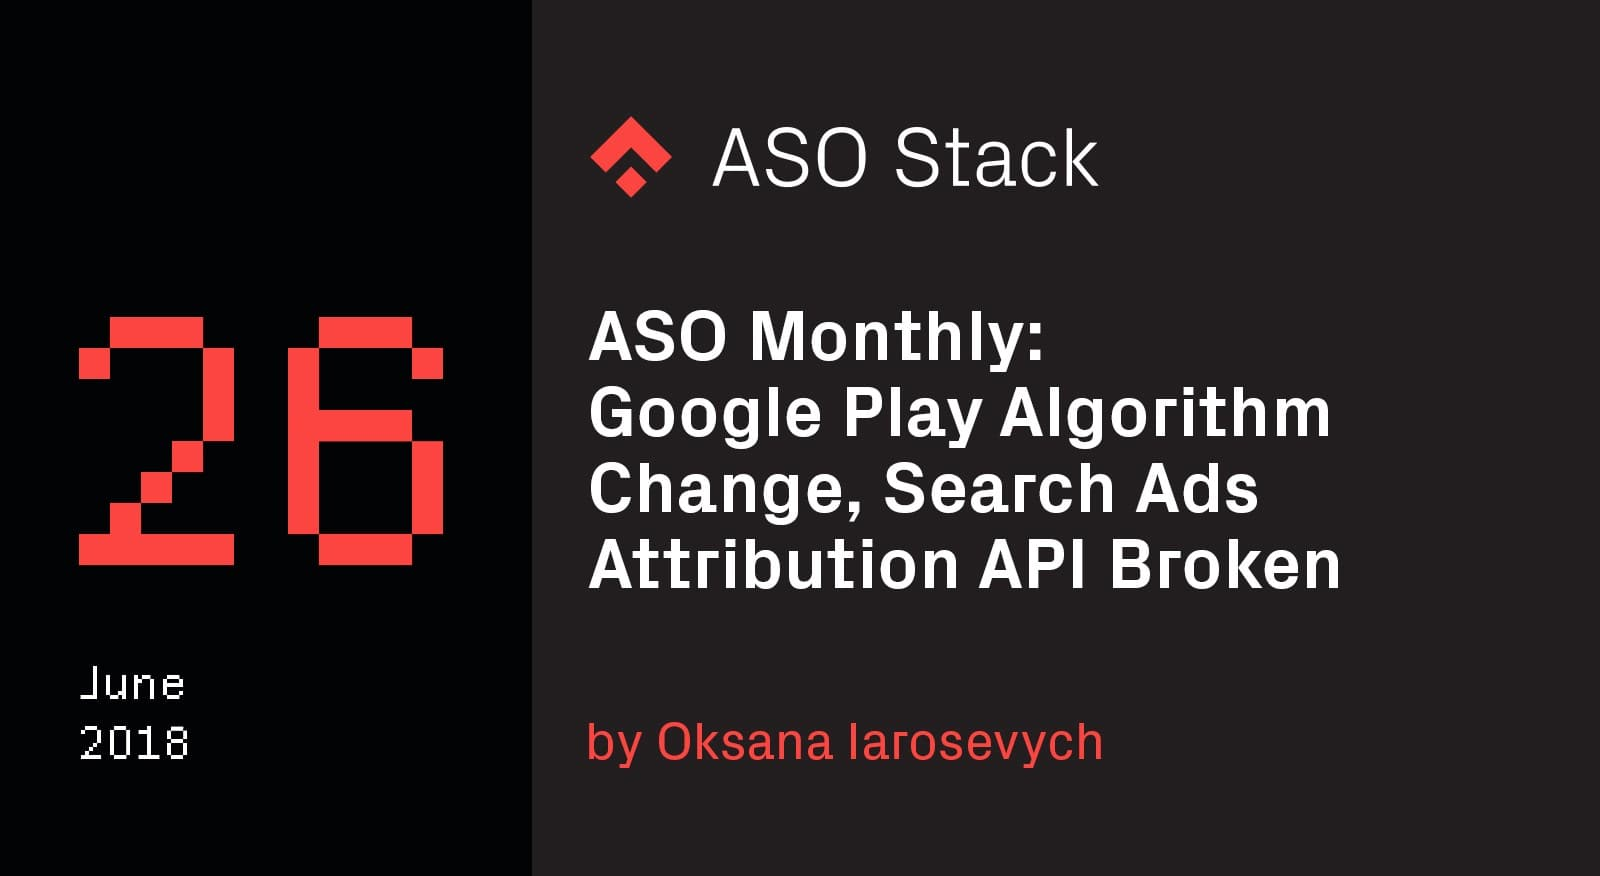 ASO Monthly #26 June 2018- Google Play Algorithm Change, Search Ads Attribution API Broken -min